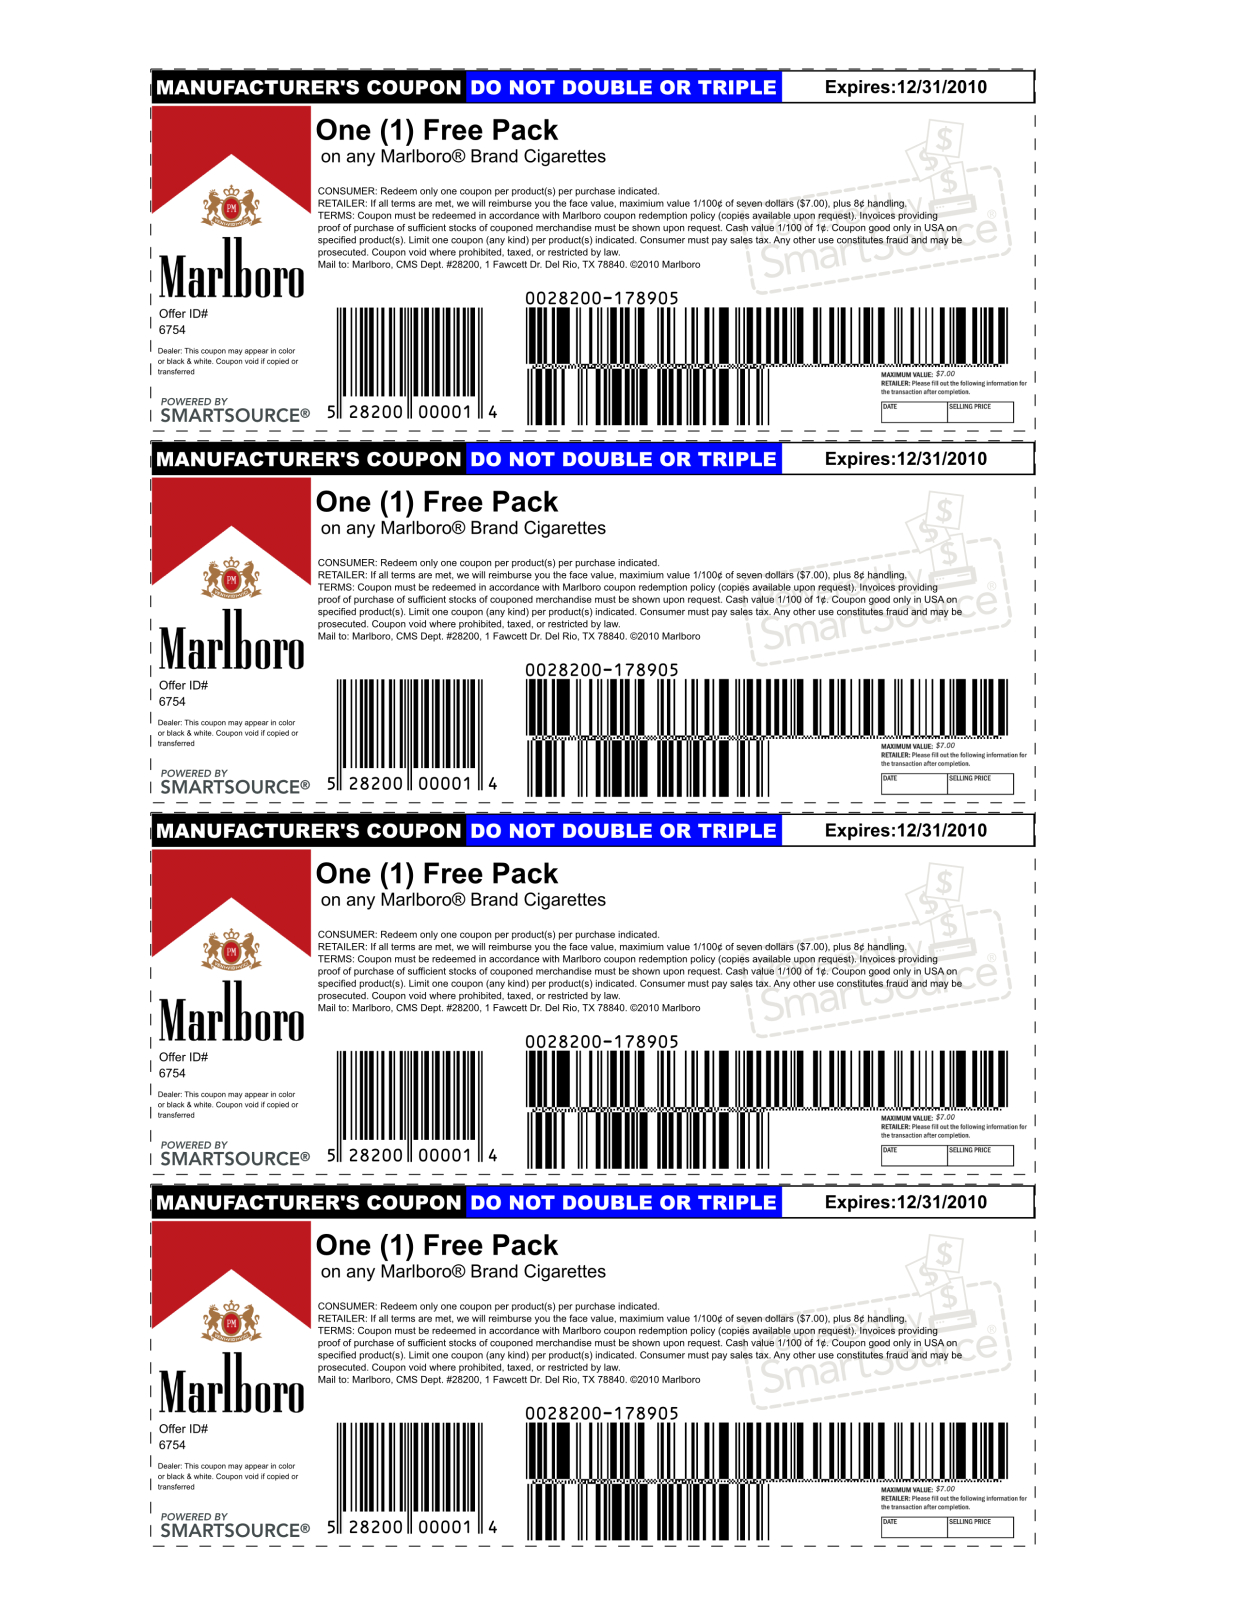 Marlboro Coupons Printable 2013 | Is Using A Possibly Fake Coupon - Free Printable Coupons Without Coupon Printer